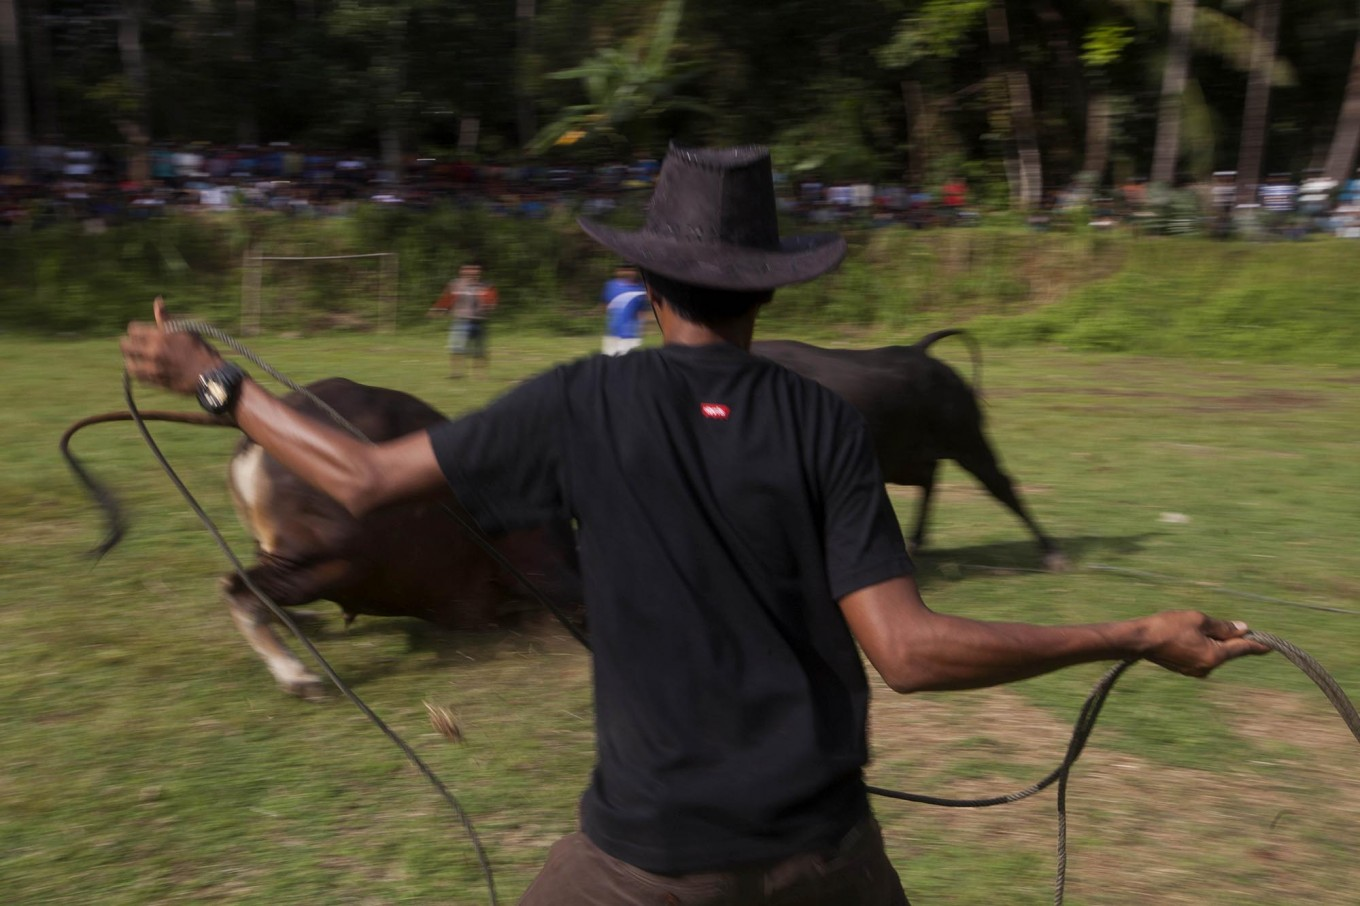 A handler with a lasso on guard to avoid a bull from leaving the field and possibly endangering the spectators. JP/Sigit Pamungkas